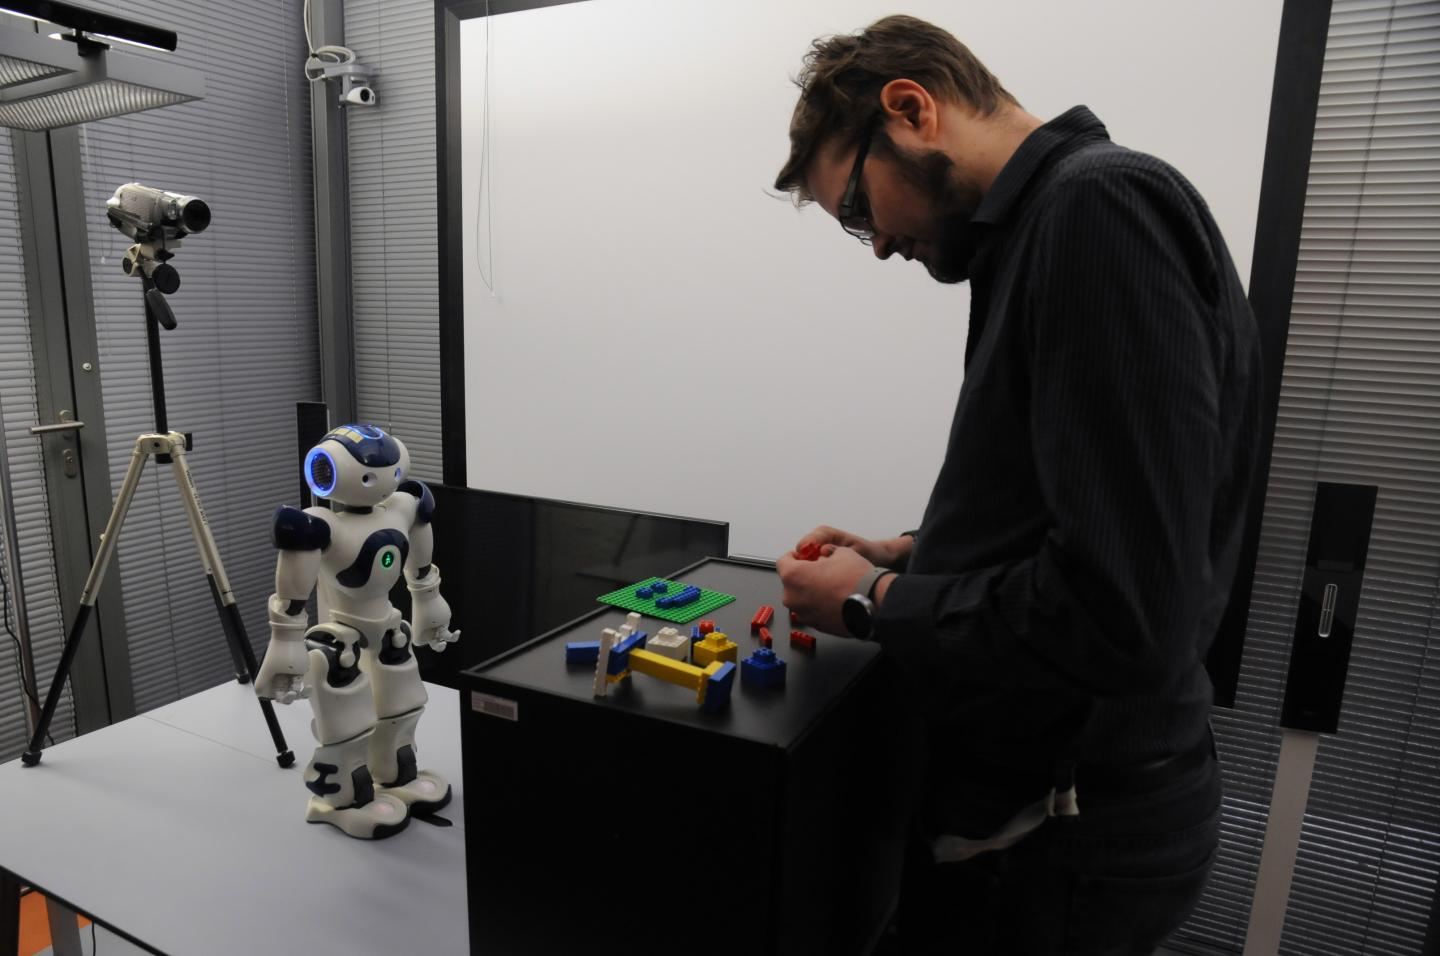 One of the study participants interacting with the robot during the experiment. (Center for Human-Computer Interaction)